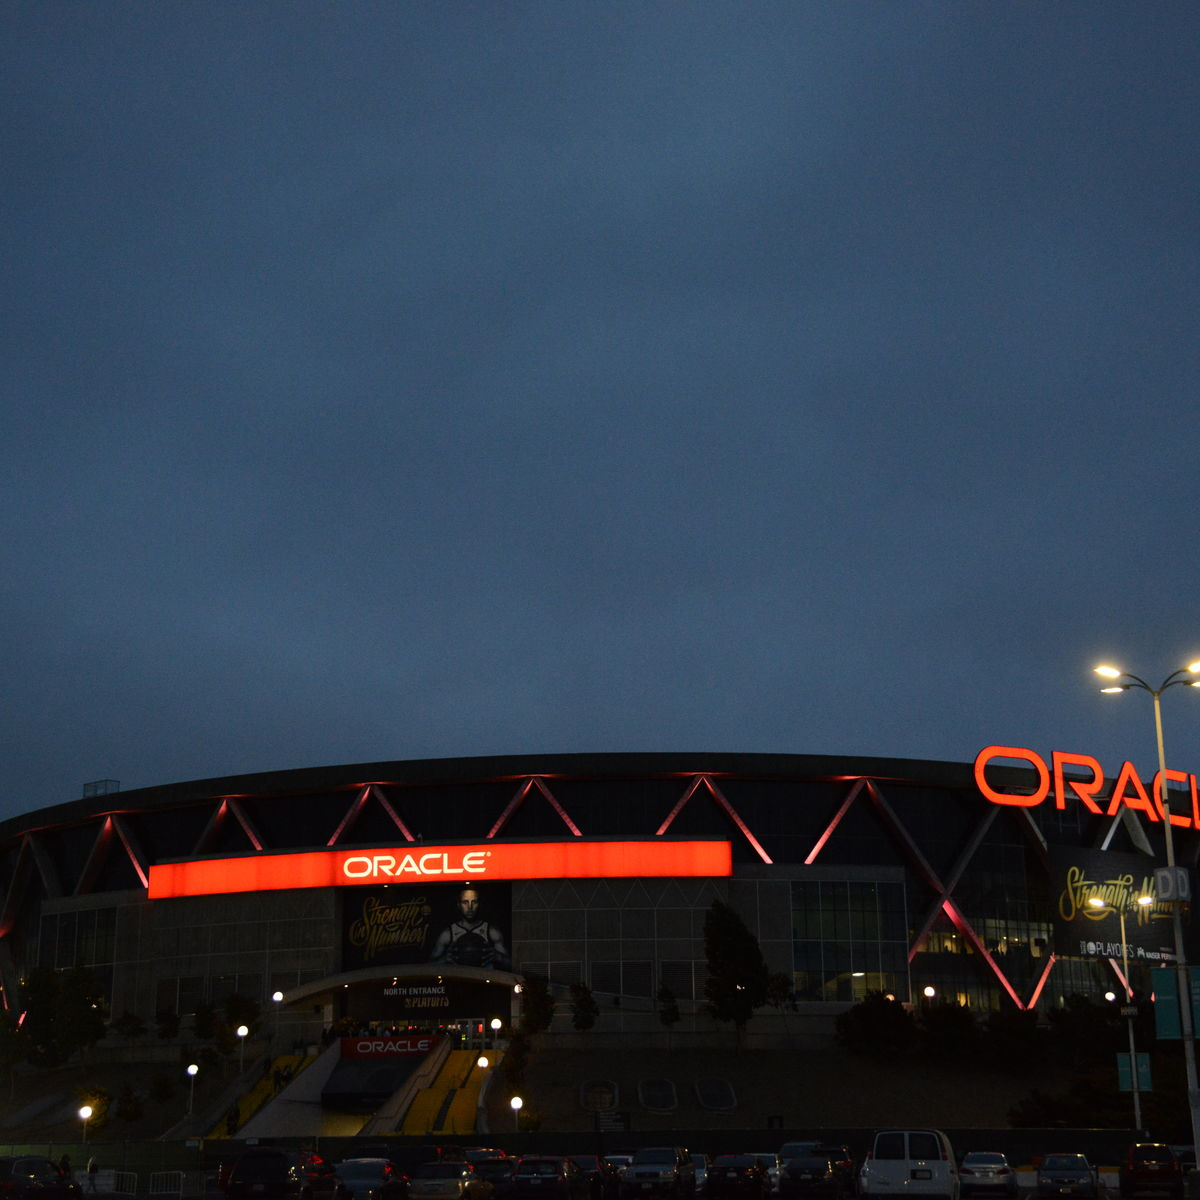 Exterior Image of Oracle Arena from the parking lot